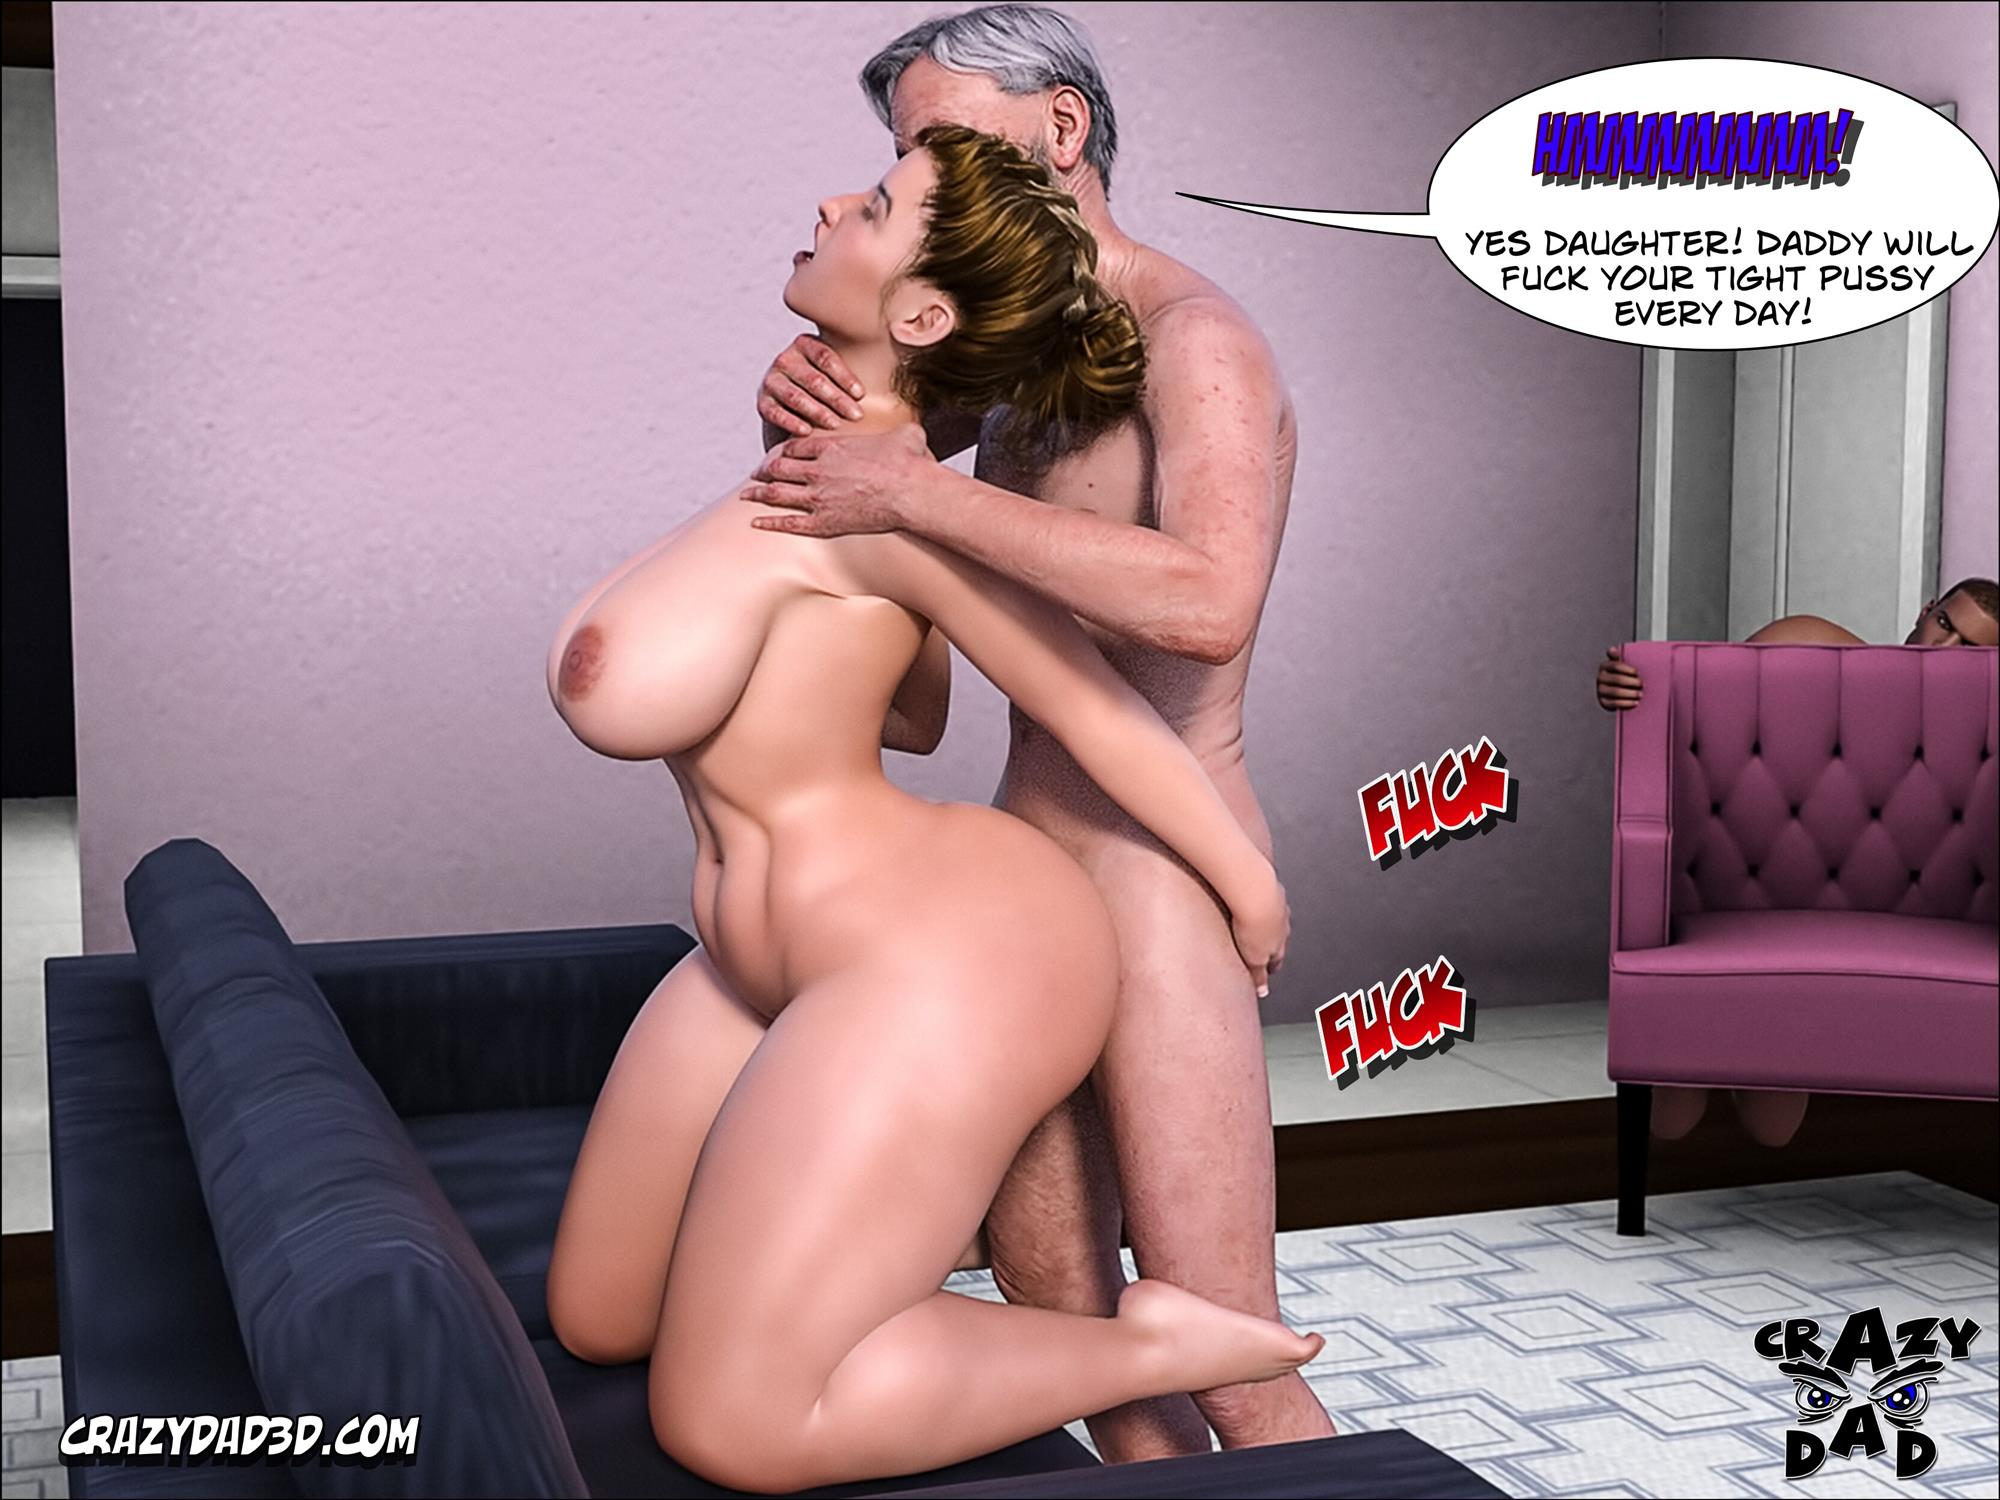 Father-in-Law at Home 10 [Crazy Dad 3D] - Foto 13